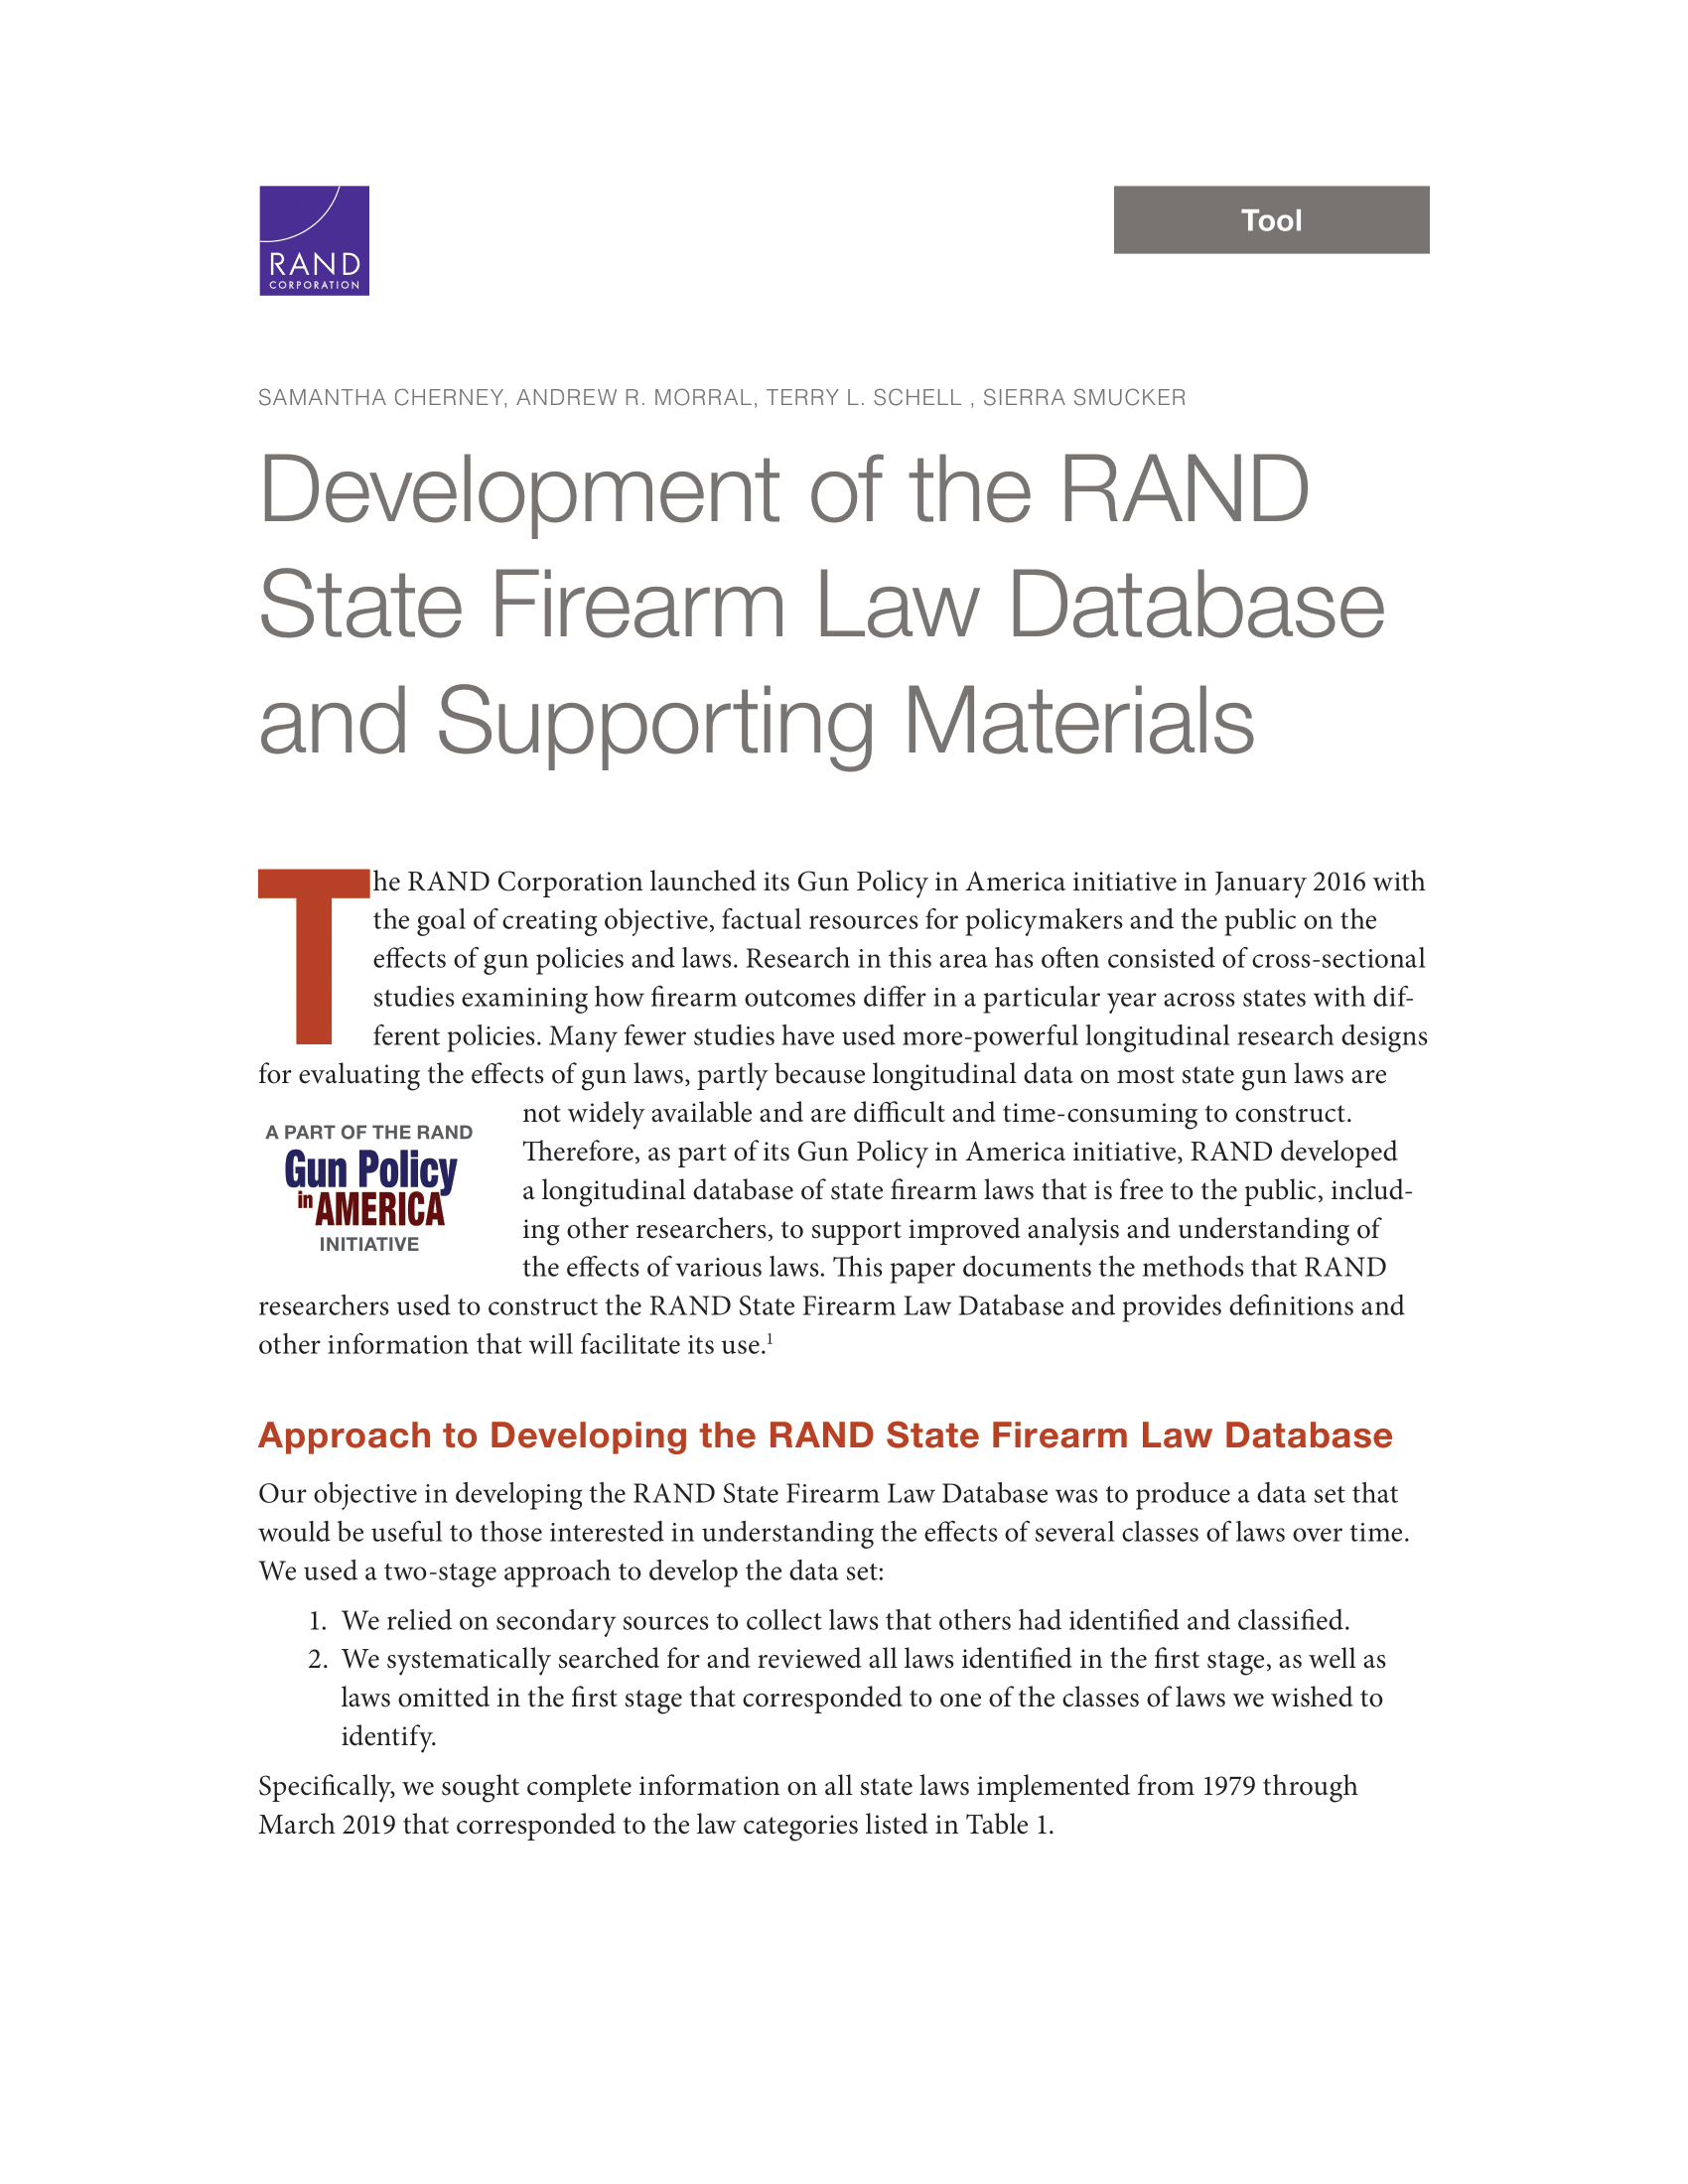 Development of the RAND State Firearm Law Database and Supporting Materials